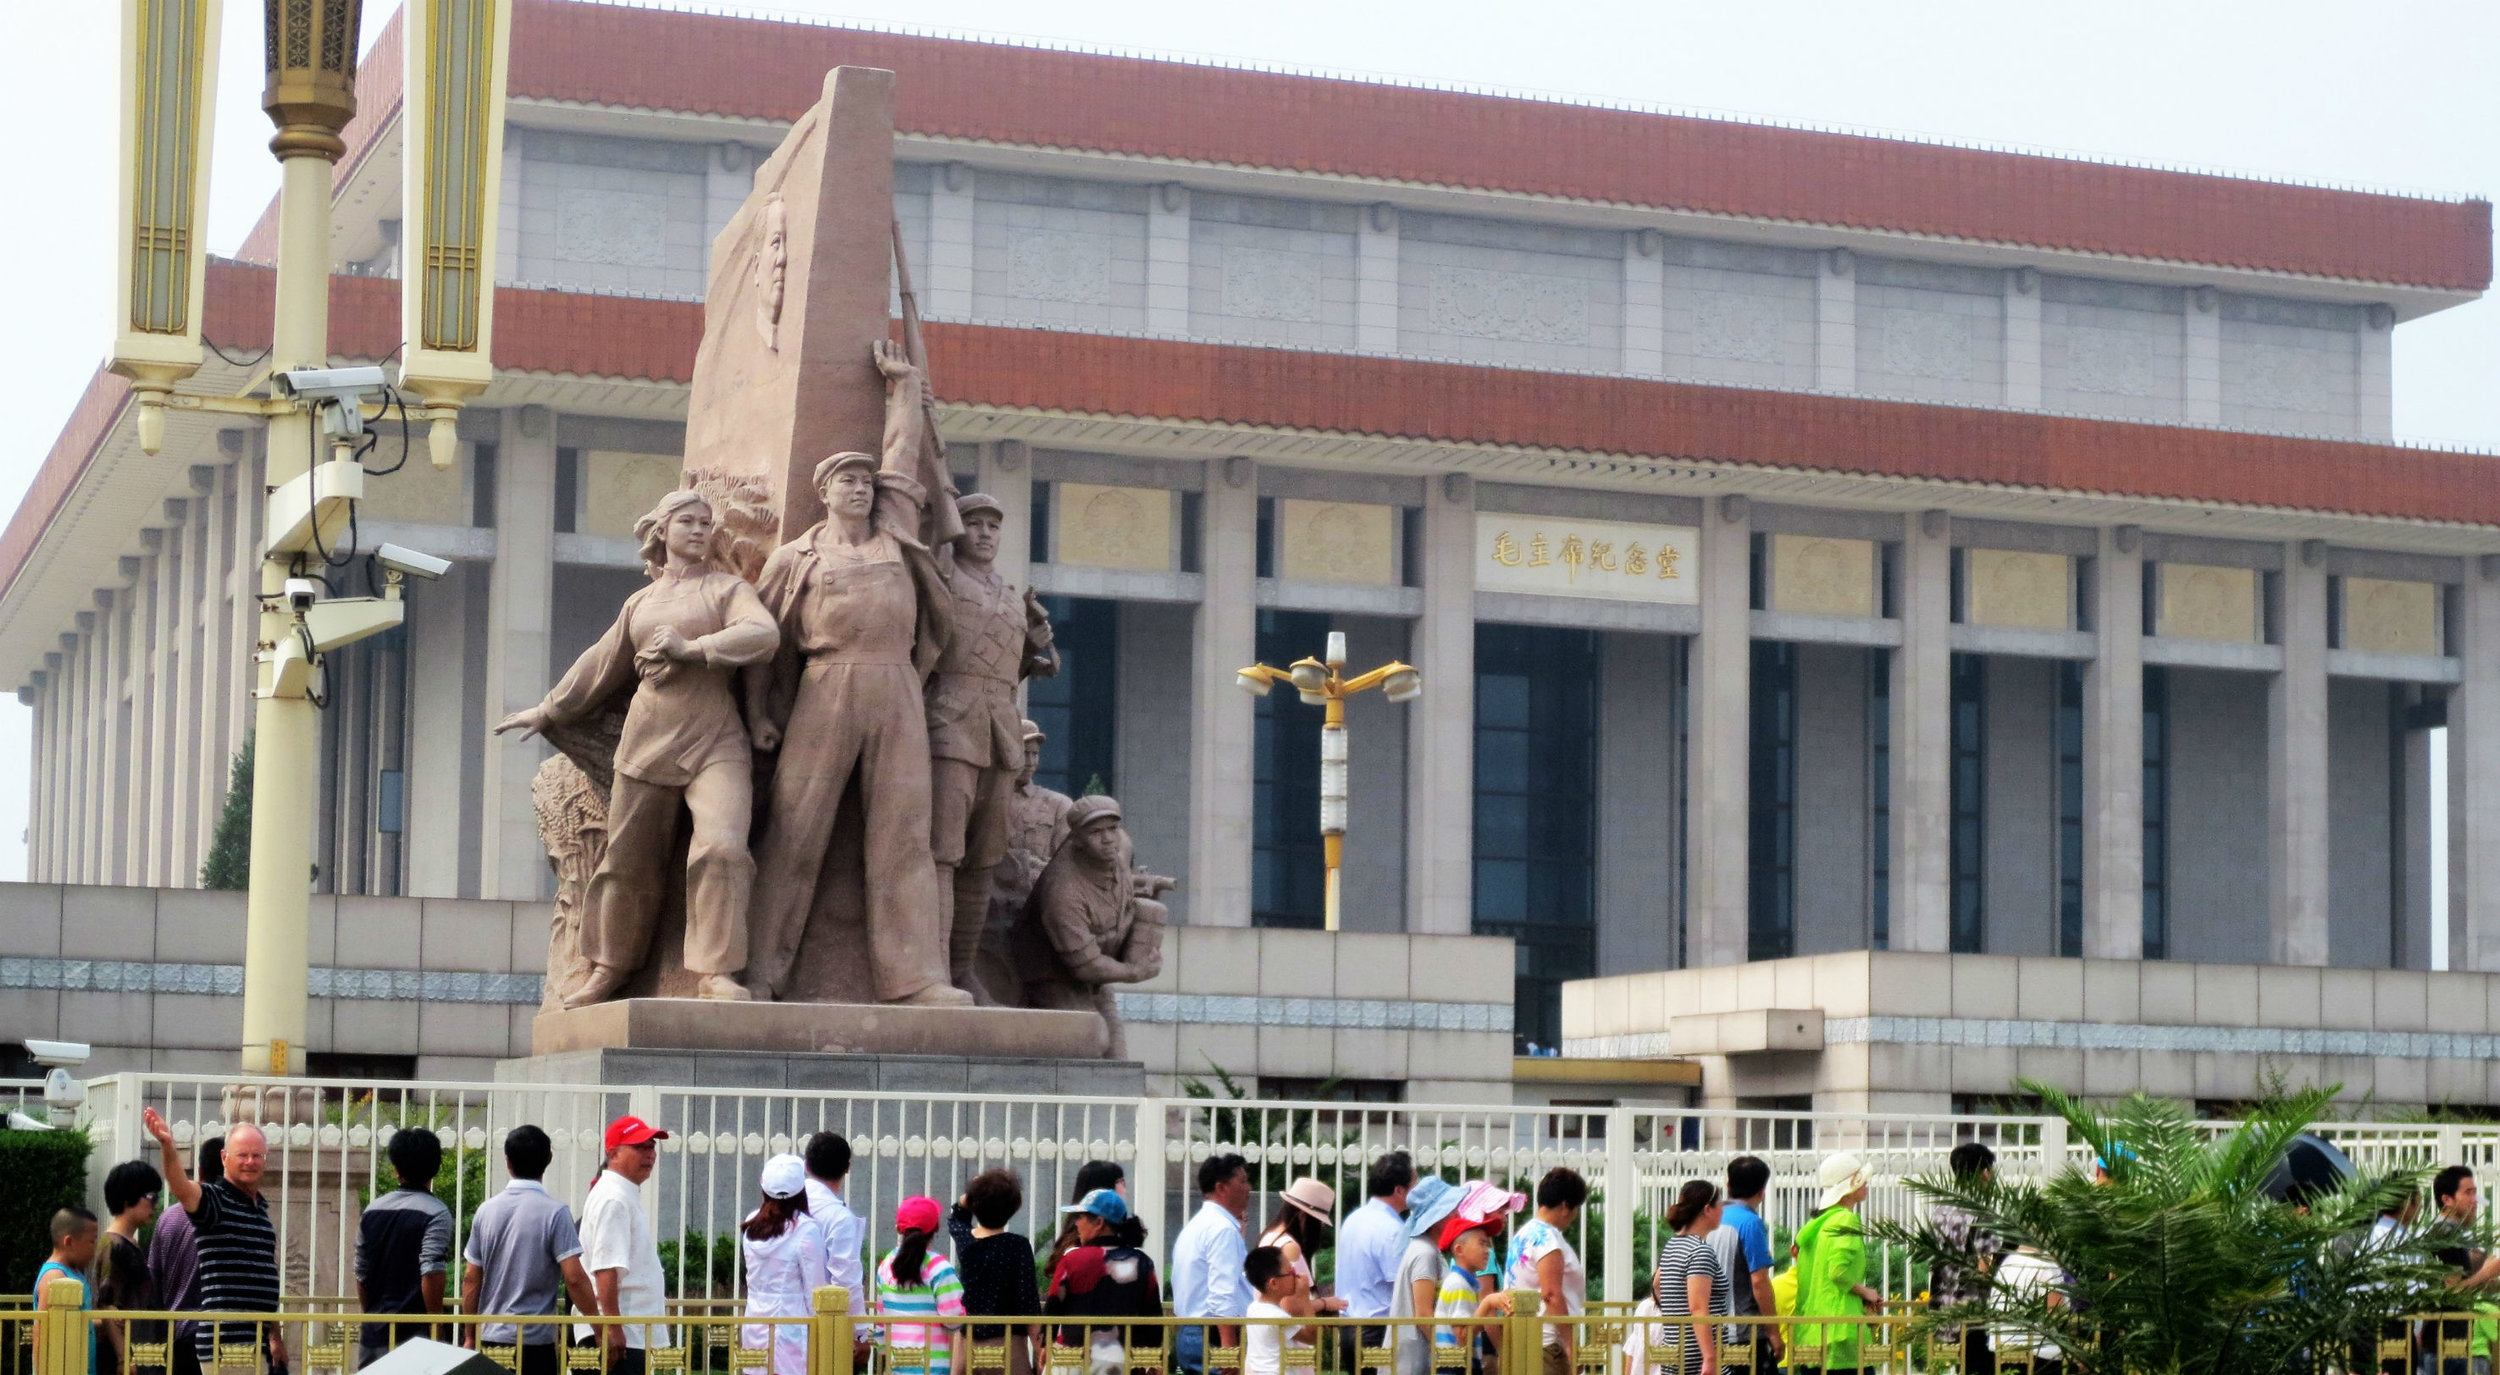 Spot Frank queuing to visit the tomb of Mao